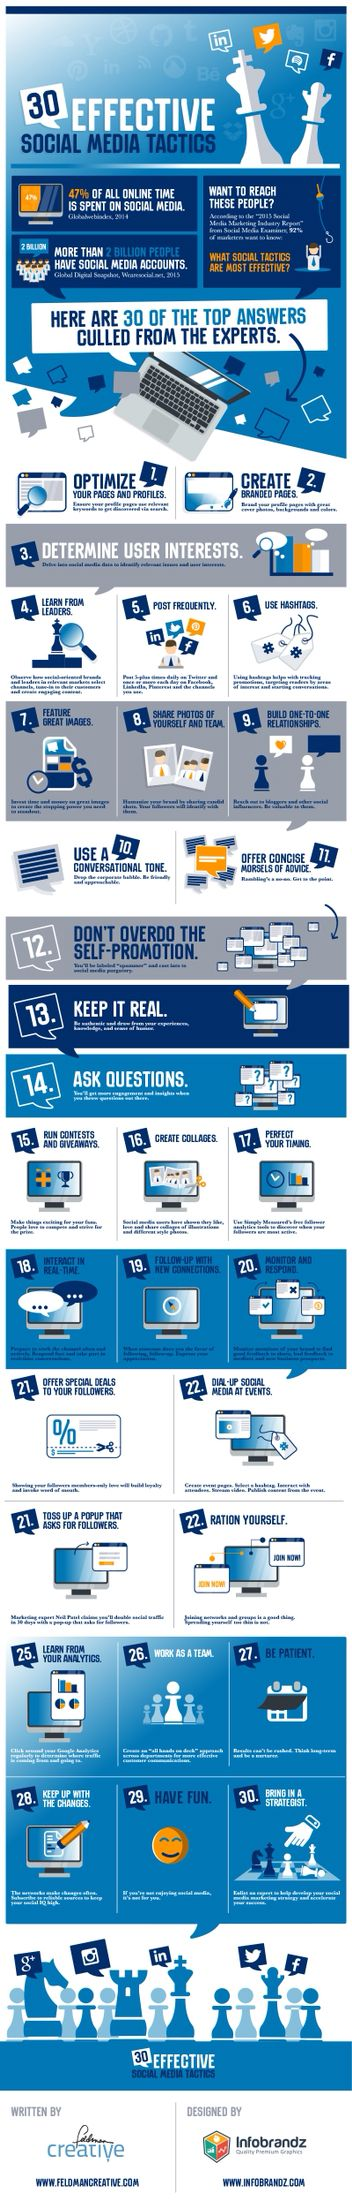 30 Effective Social Media Tactics Worth Testing for Yourself [Infographic]